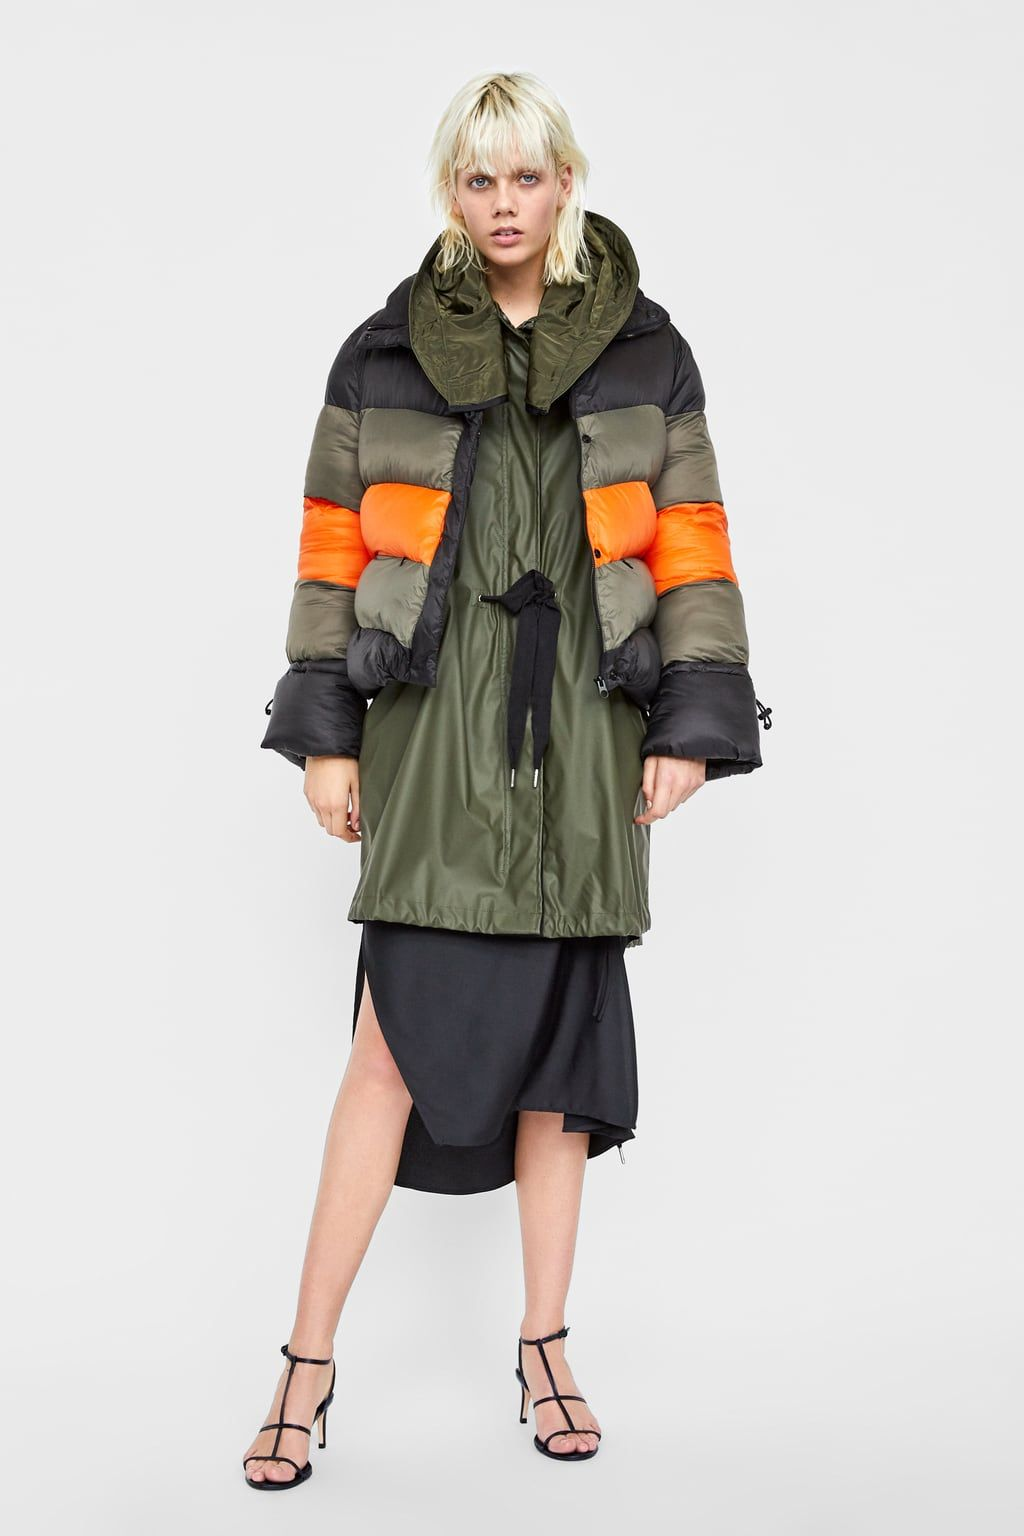 ae7d1bb6 Block color puffer jacket | fashion | Puffer jackets, Jackets, Puffy ...